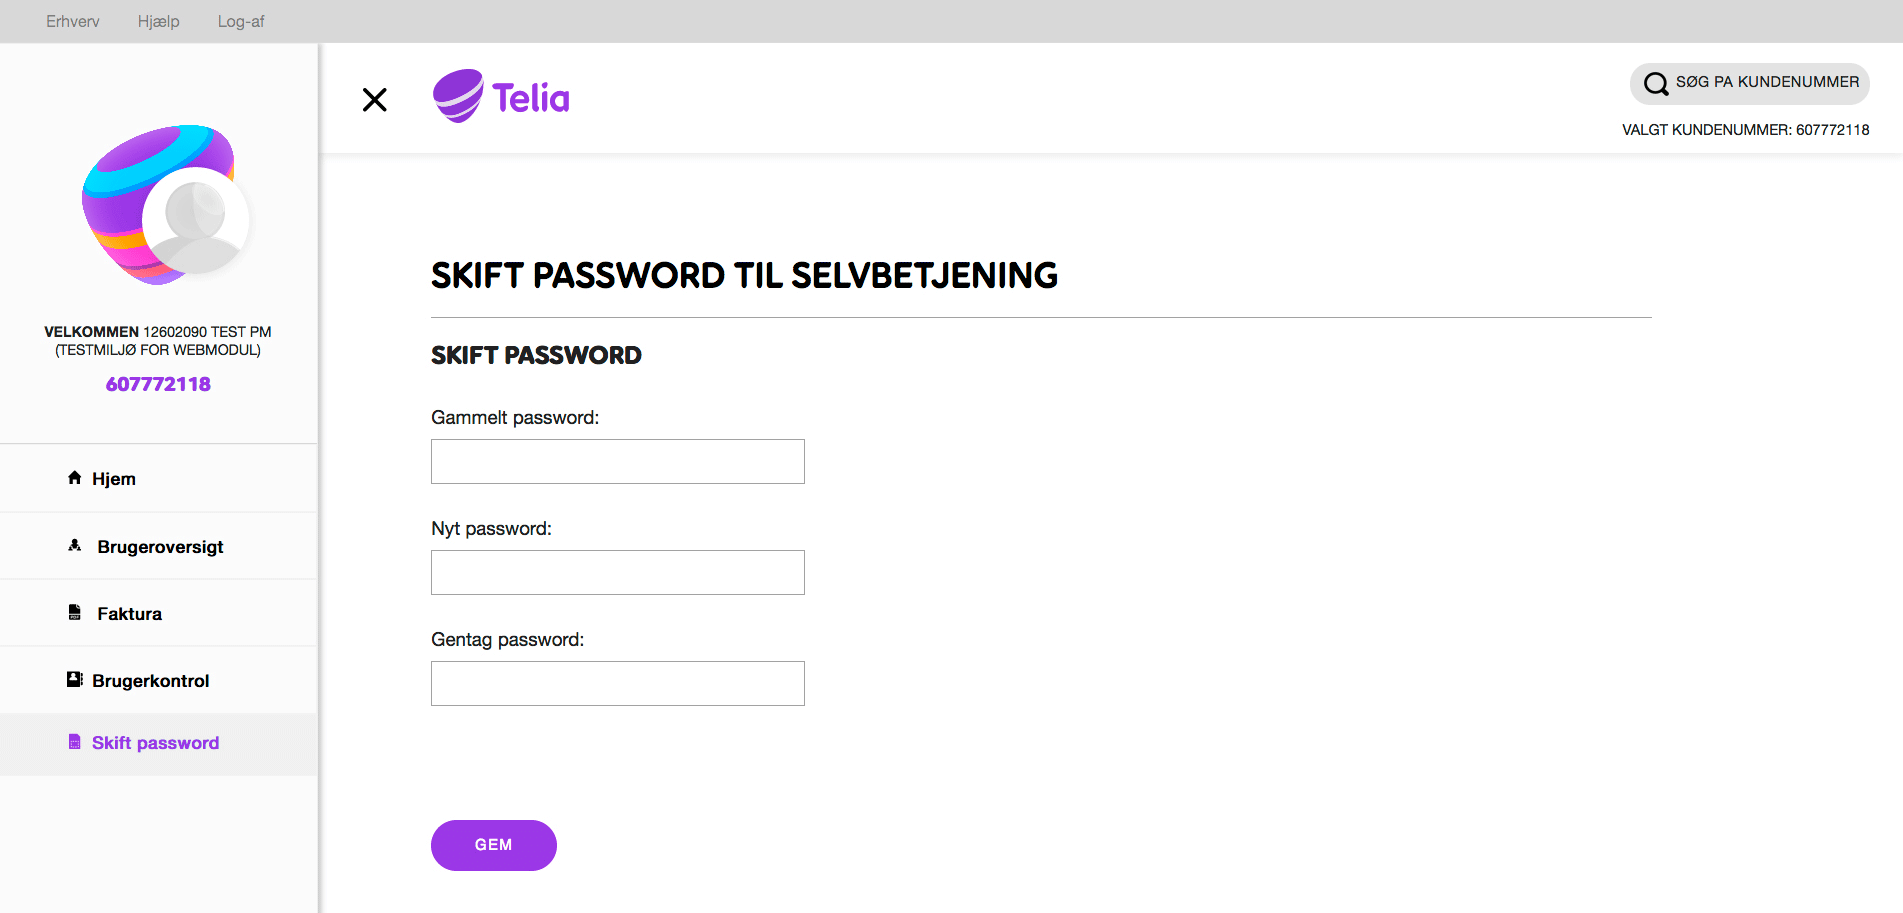 telia default password